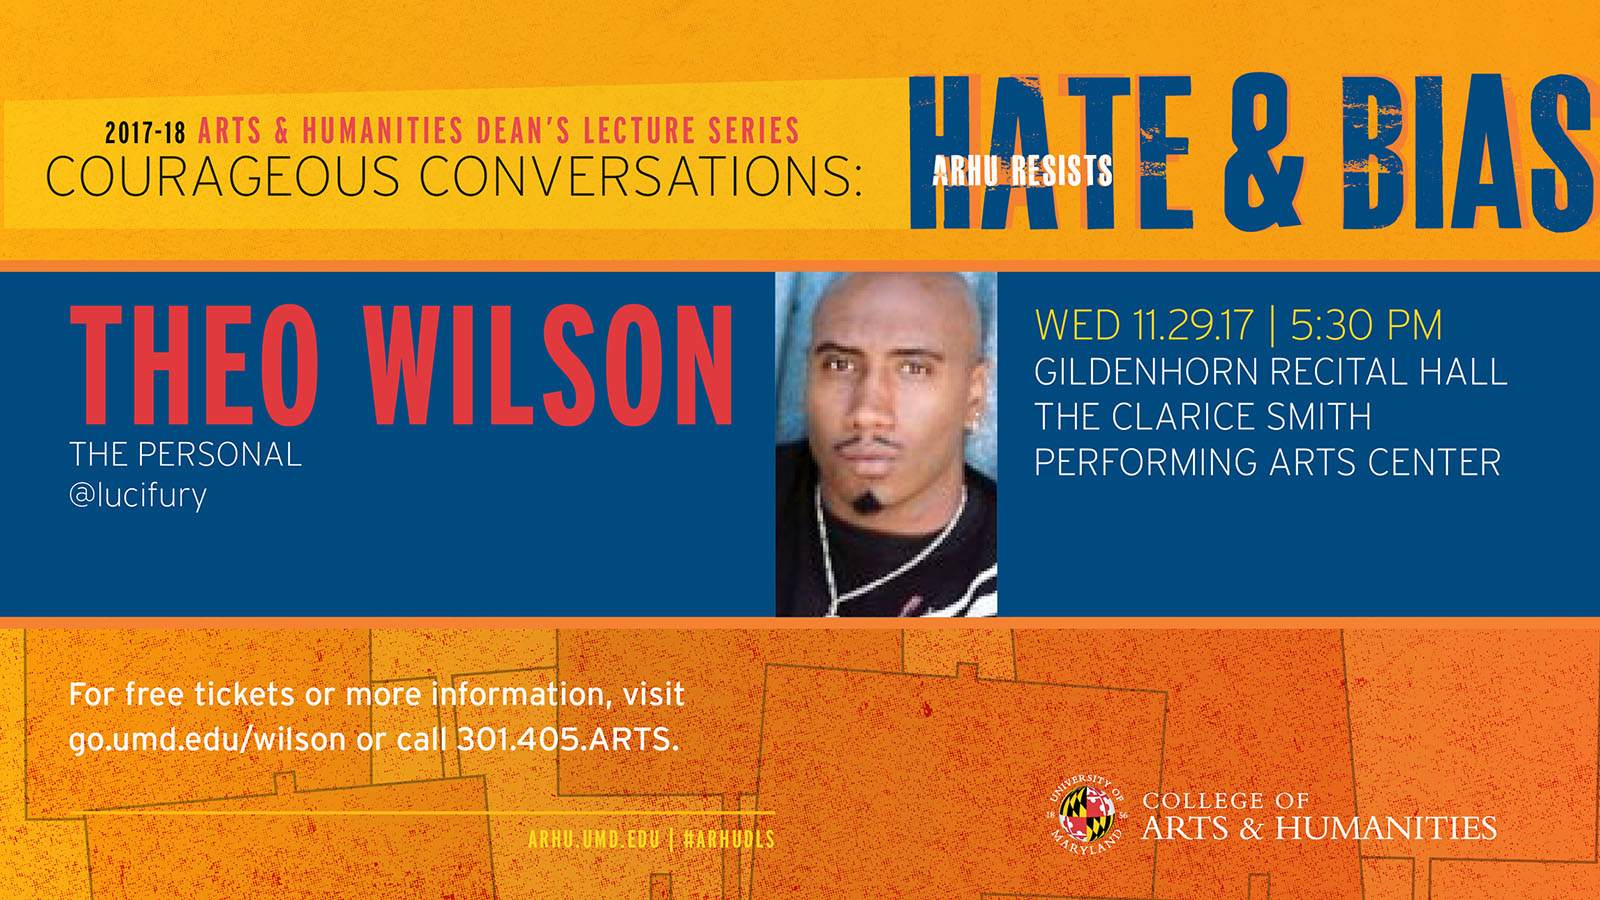 annual Arts & Humanities Dean's Lecture Series with award-winning slam poet and social justice activist Theo Wilson